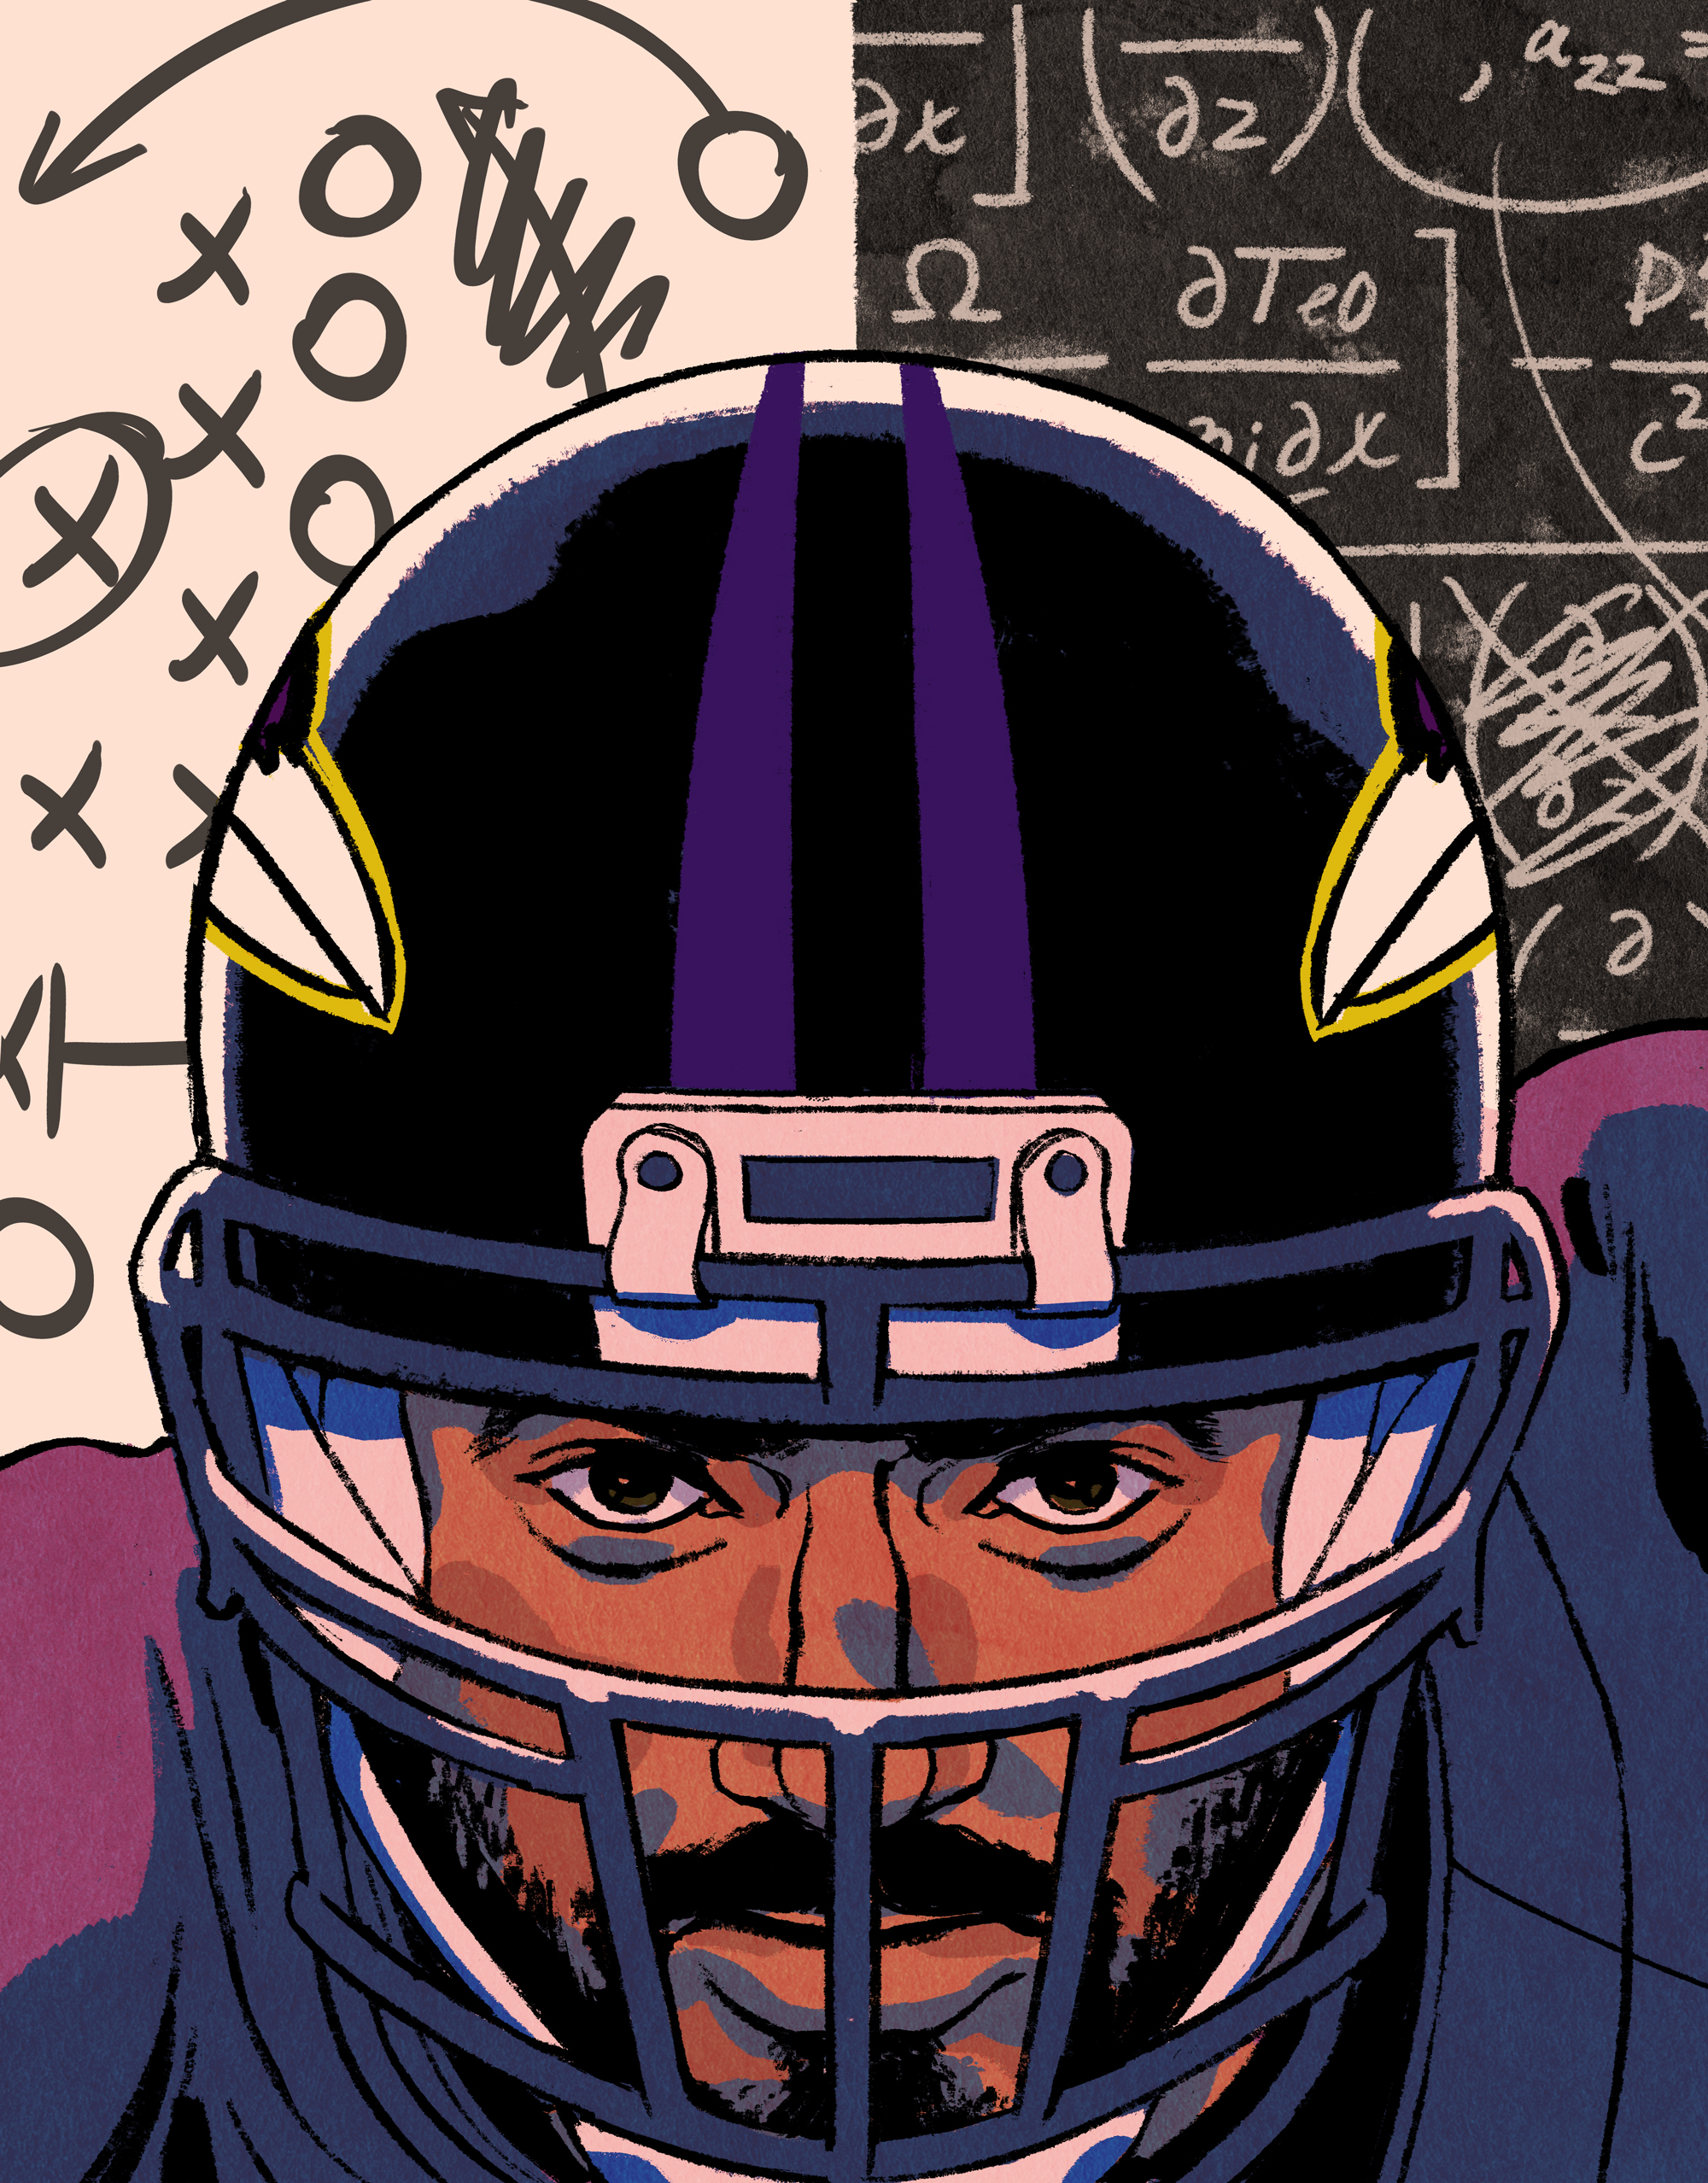 From The Nfl To Mit The Double Life Of John Urschel Mit